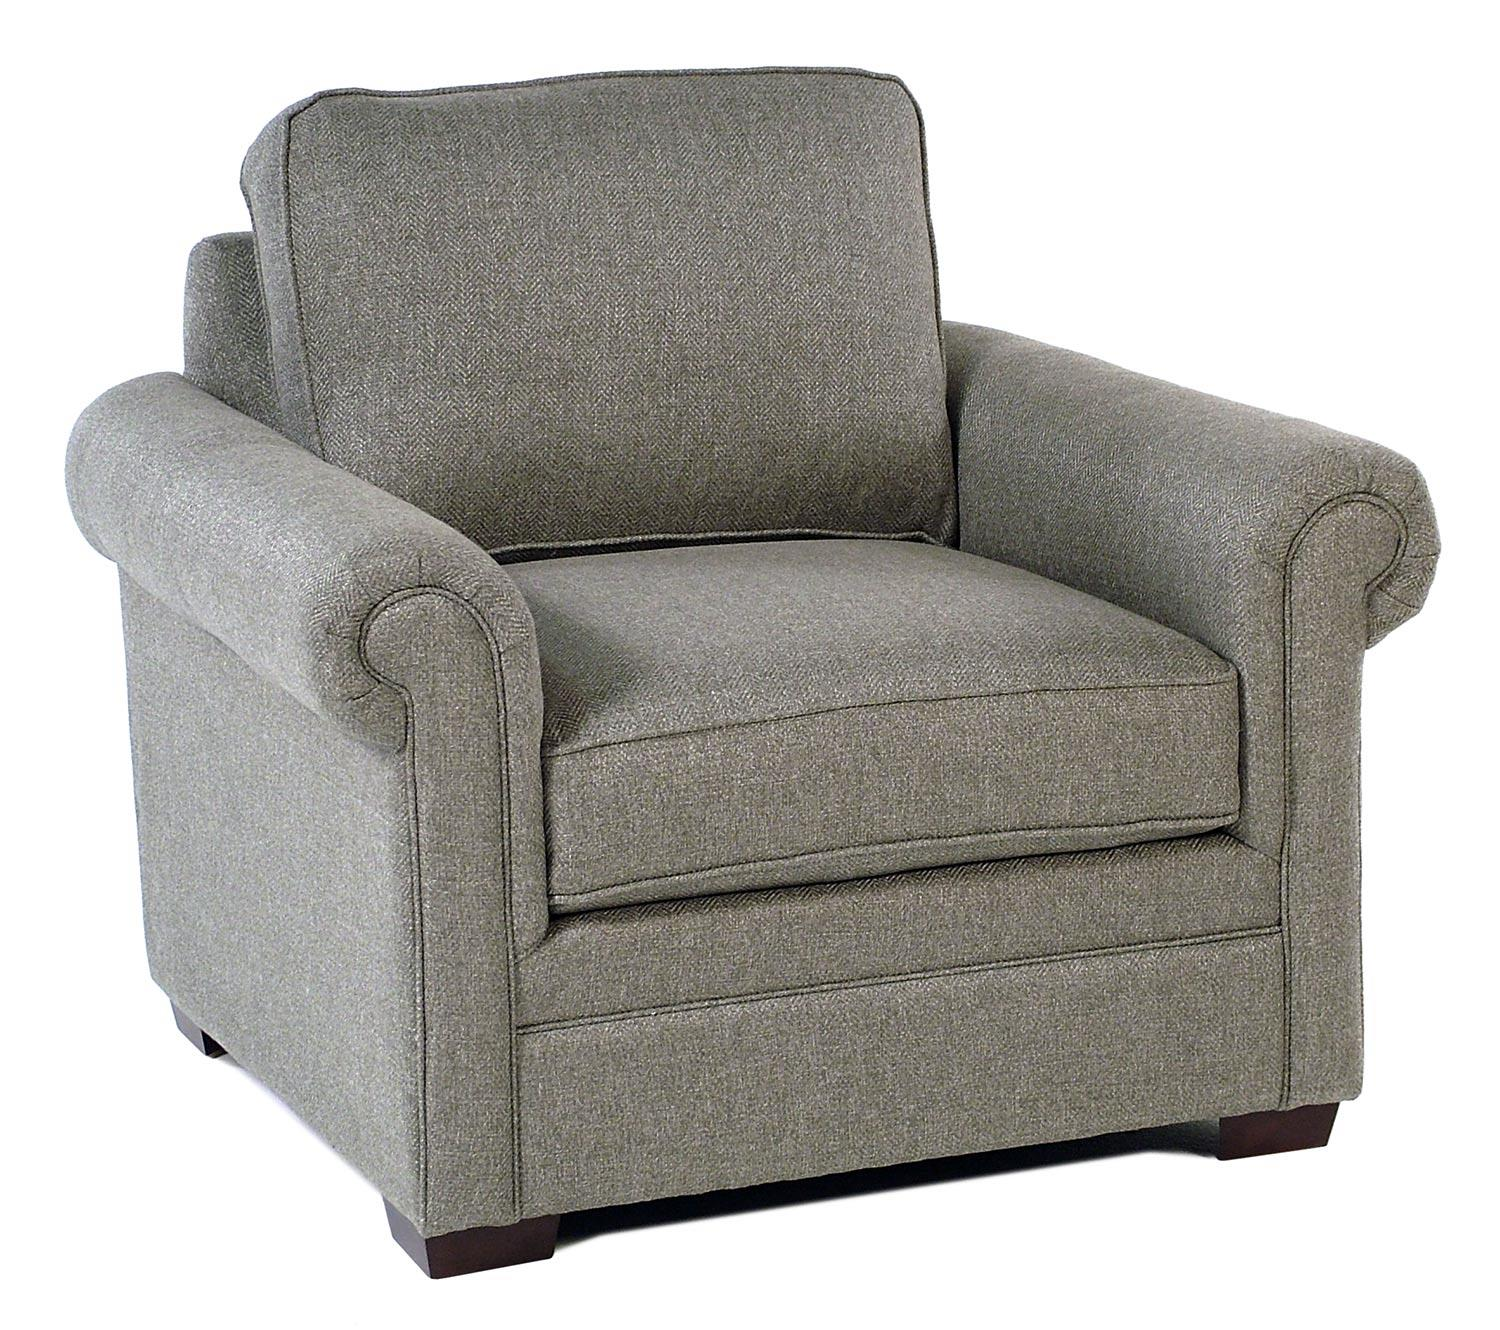 Cozy Life F9 Custom Collection Romance Upholstered Chair - Item Number: F914110-R41